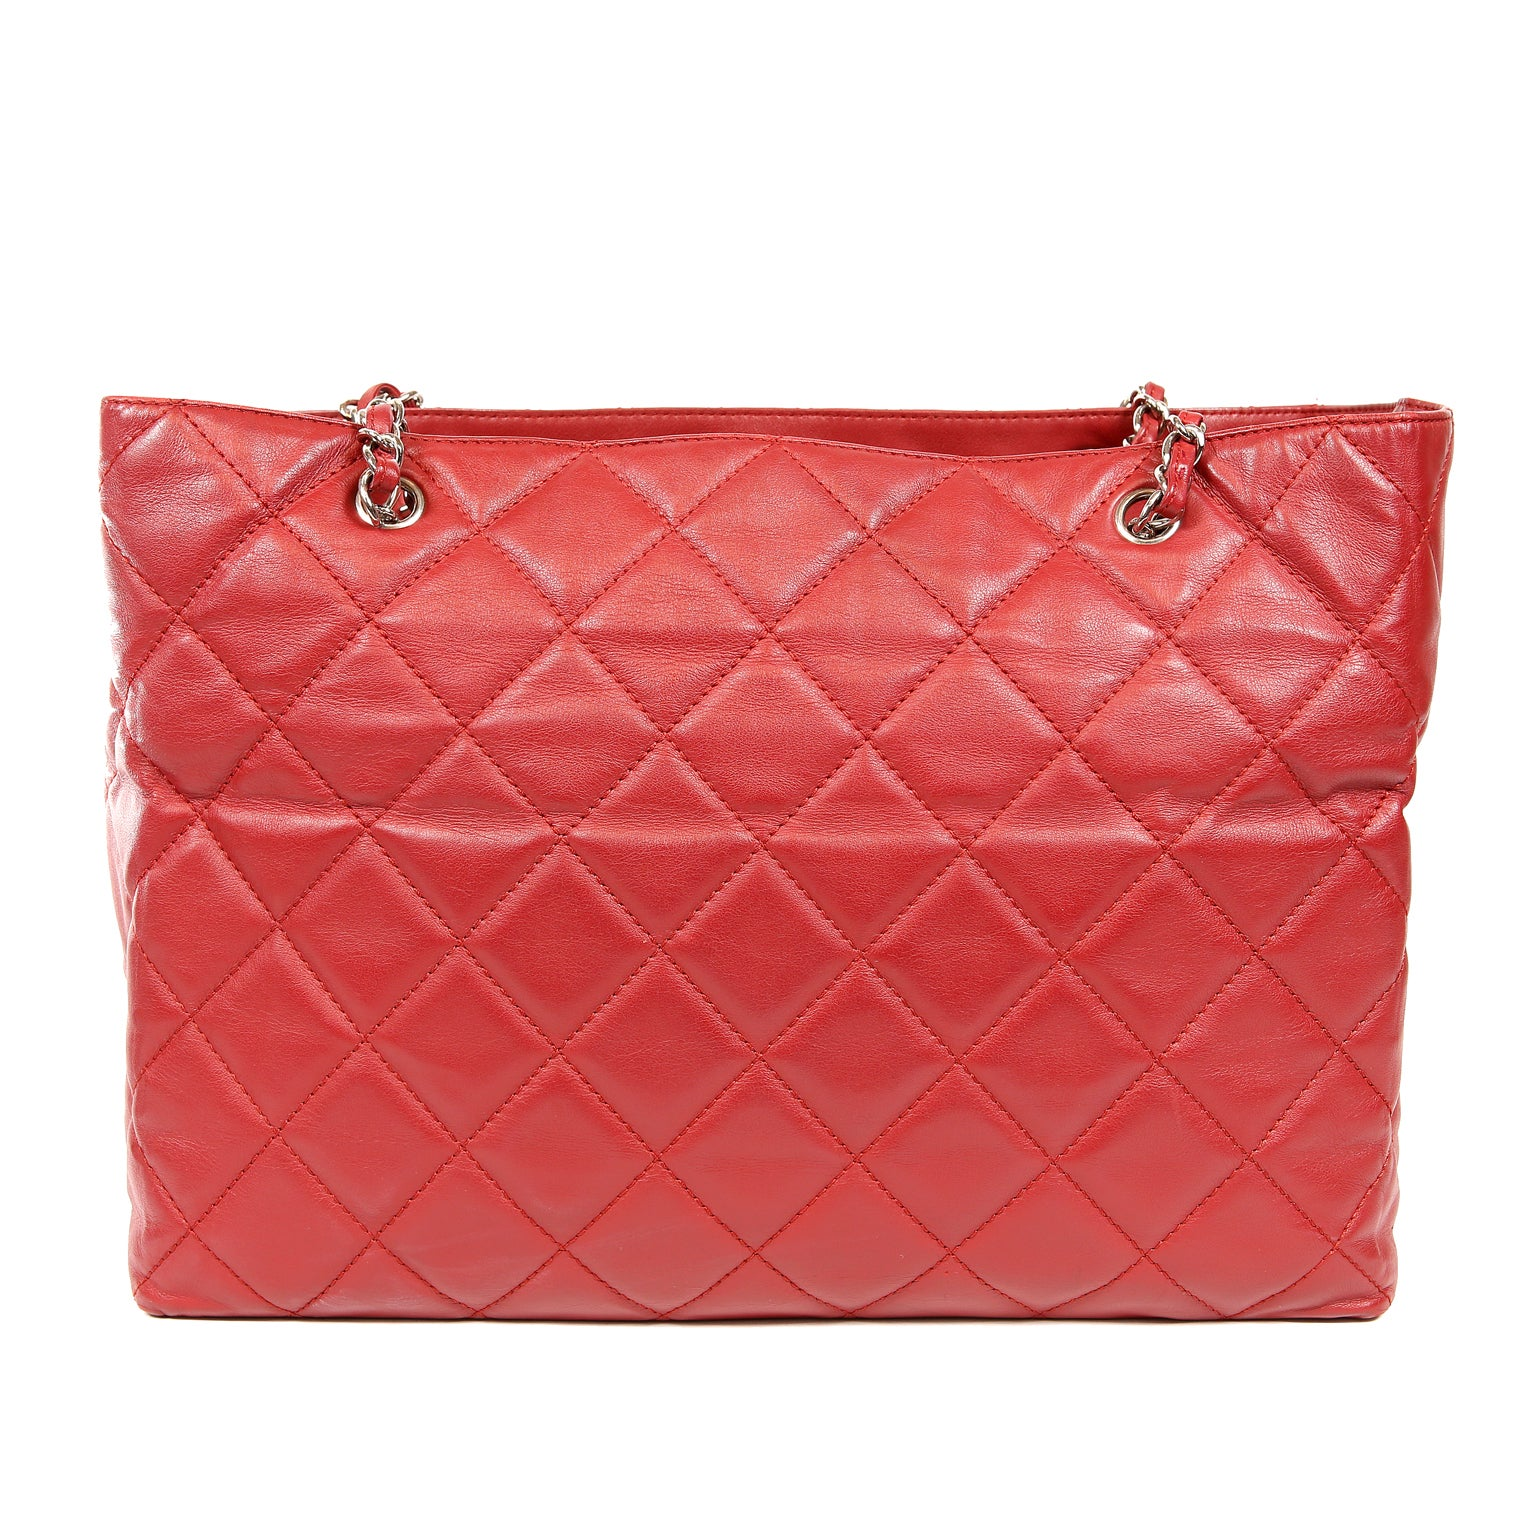 4129af9621 Chanel Red Leather XXL Tote Bag For Sale at 1stdibs